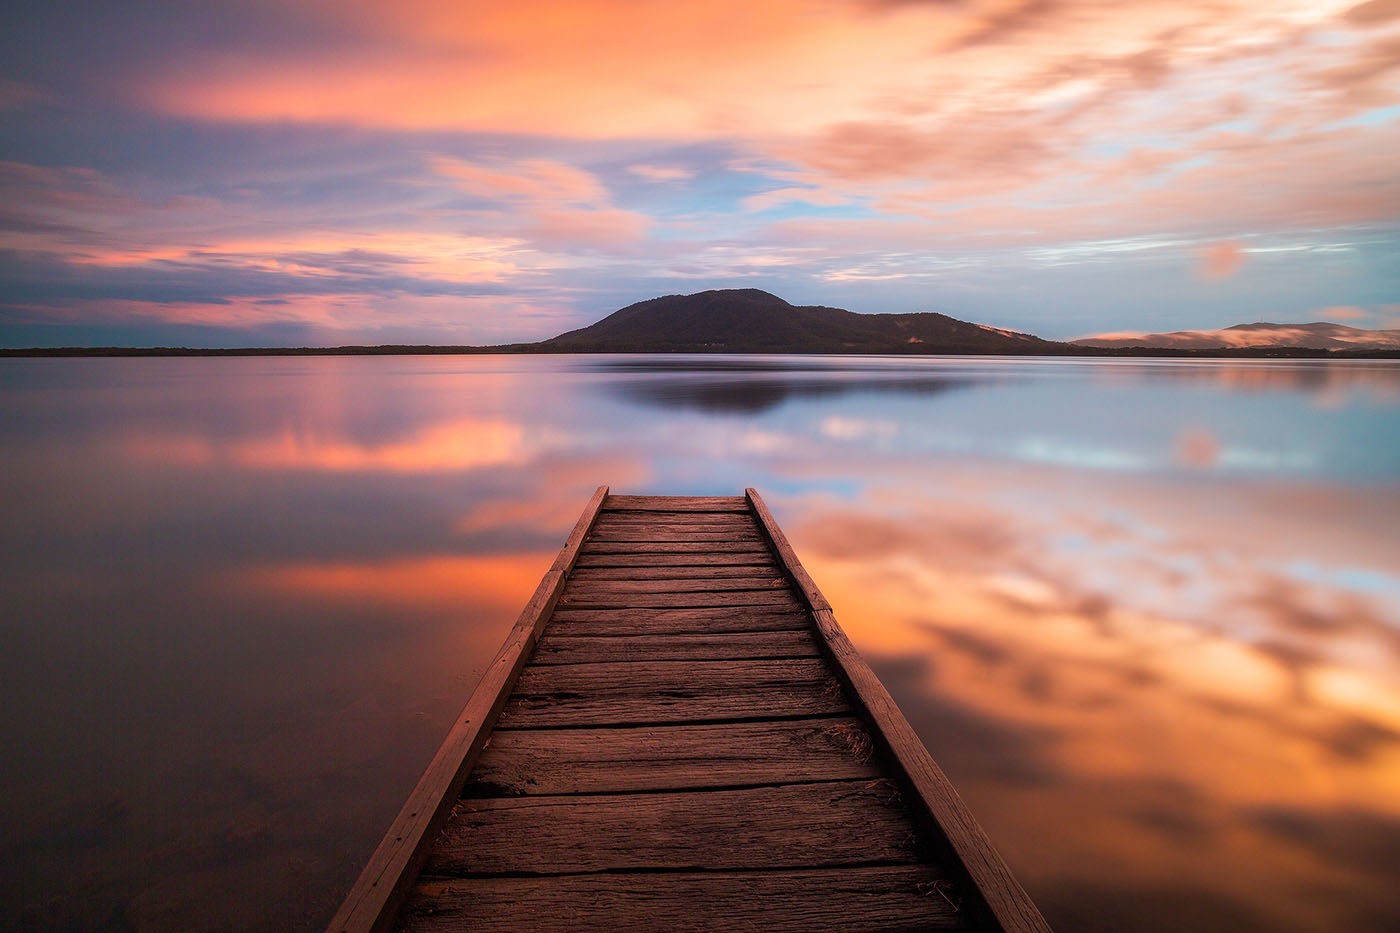 NiSi Filters Queens Lake Port Macquarie New South Wales Australia Mid North Coast